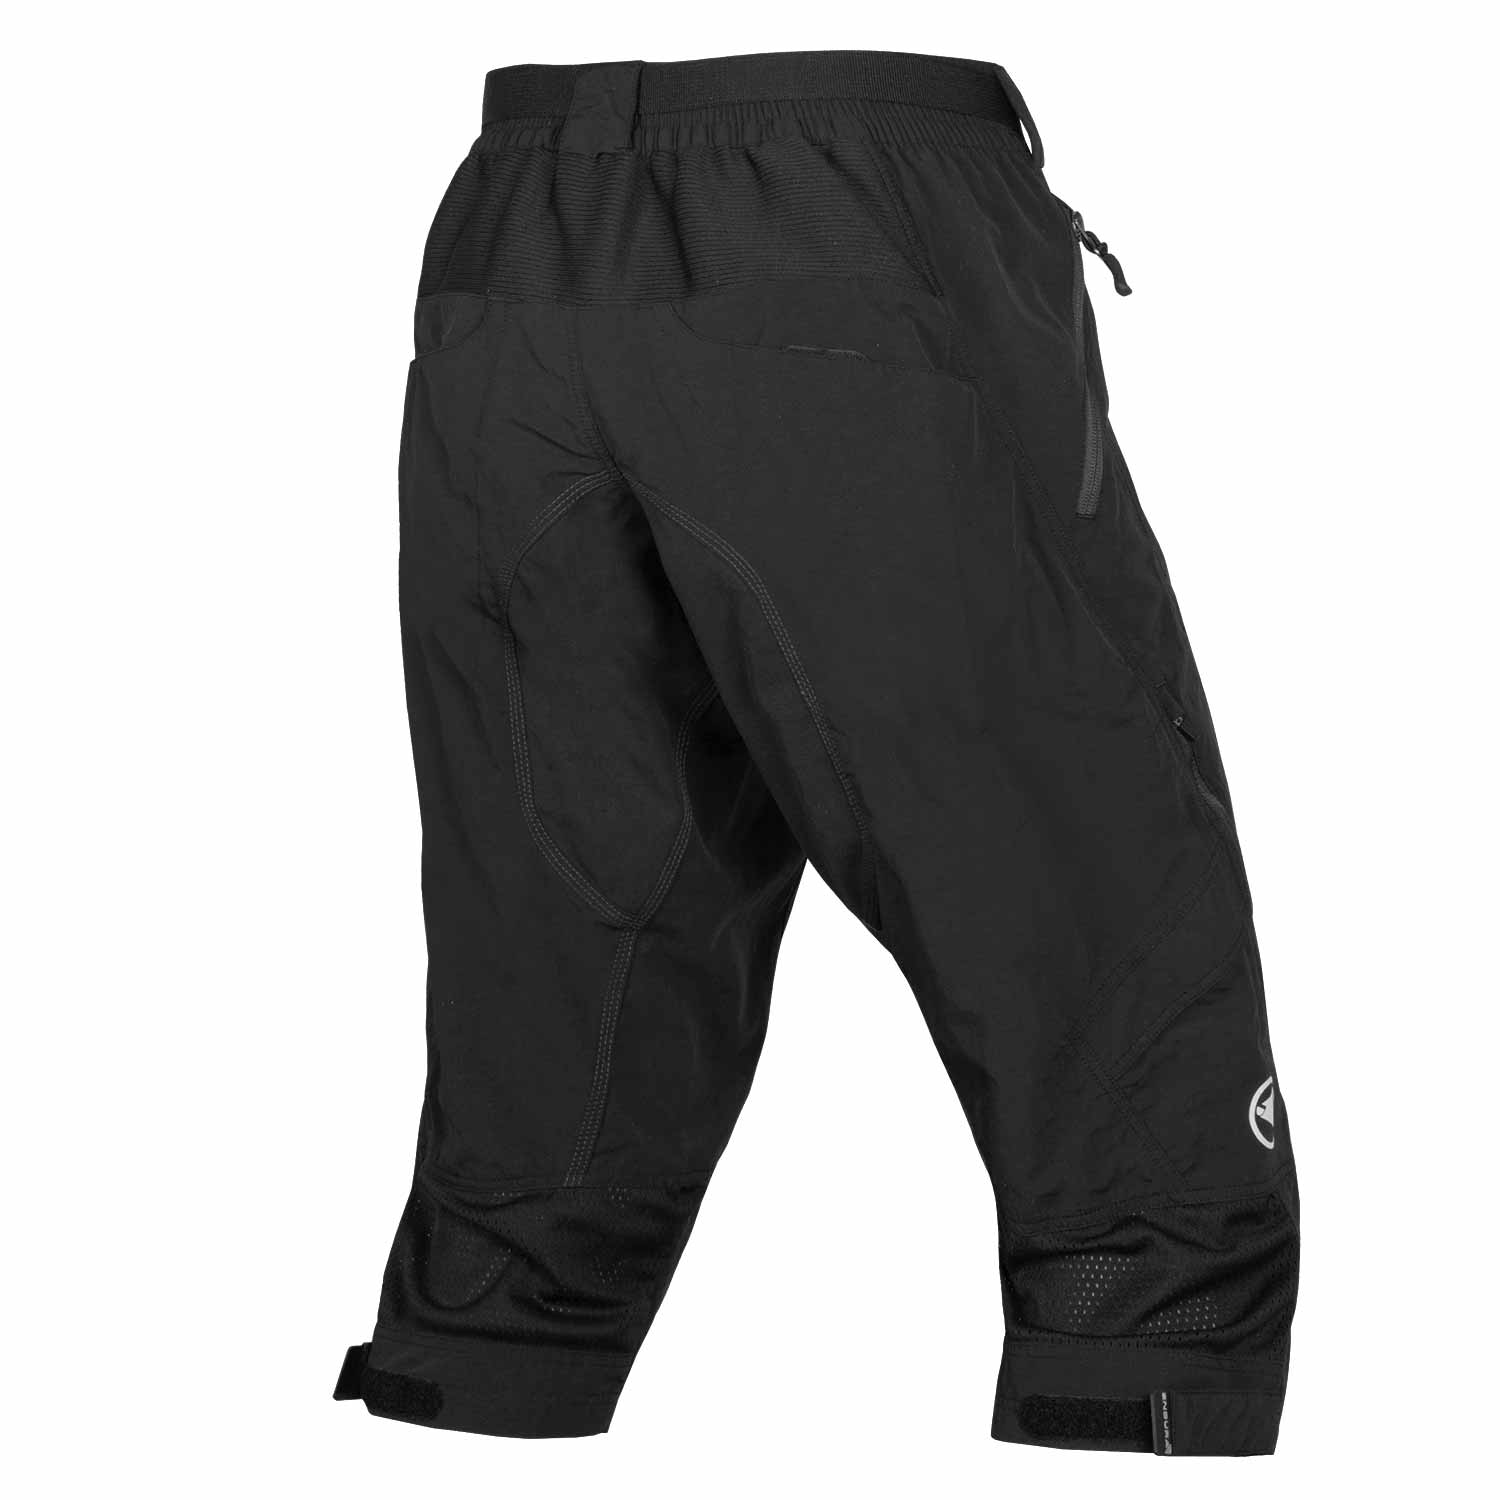 Hummvee 3/4 Short II with liner Black